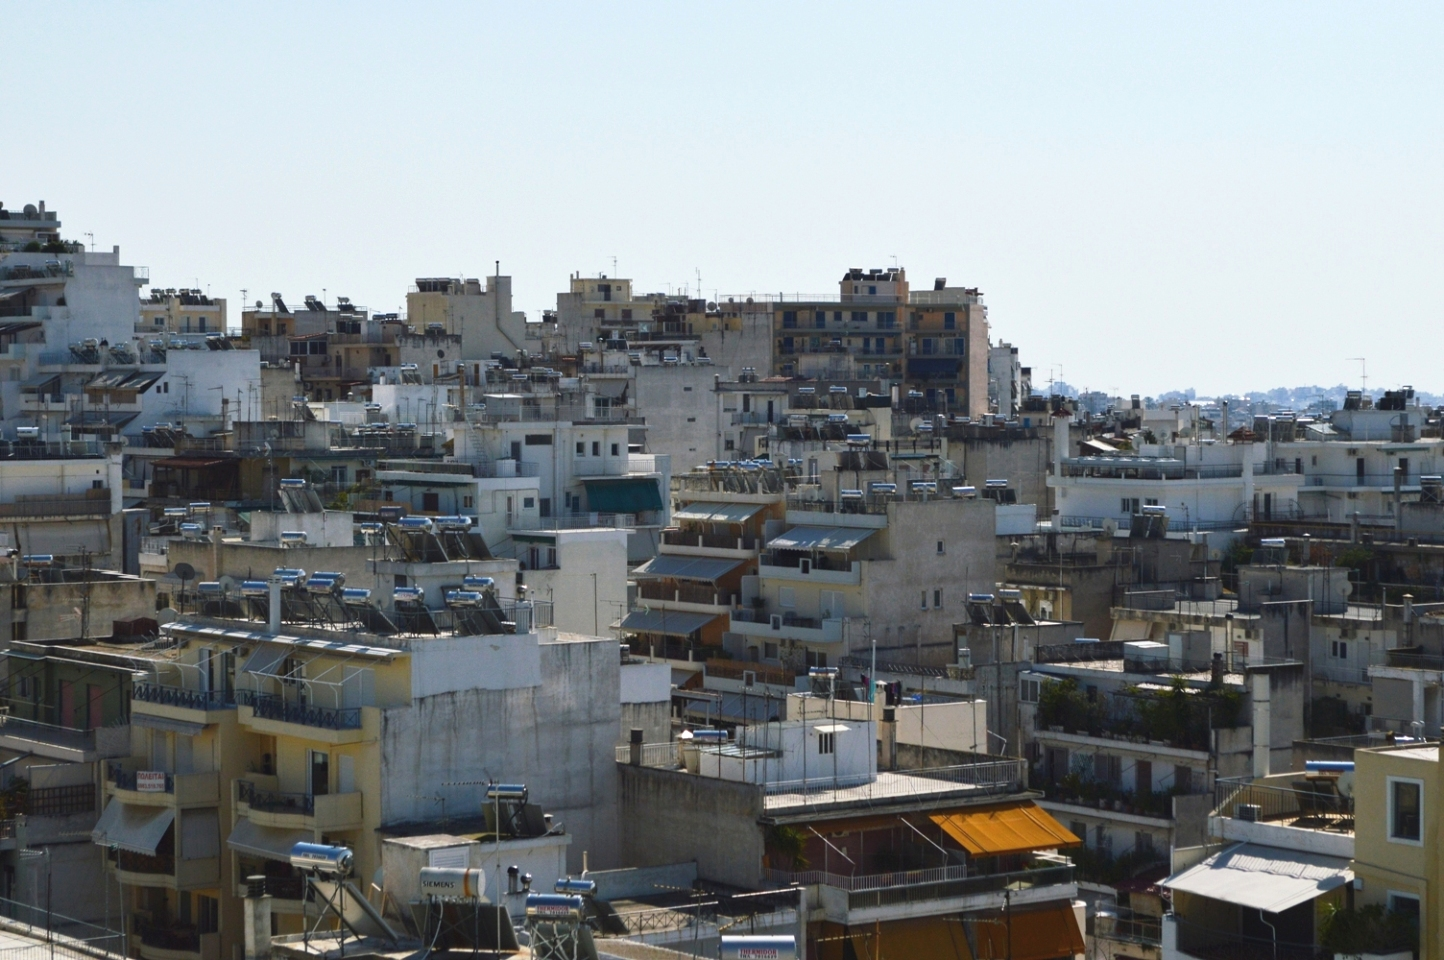 Solar heaters on rooftops in Athens, Greece